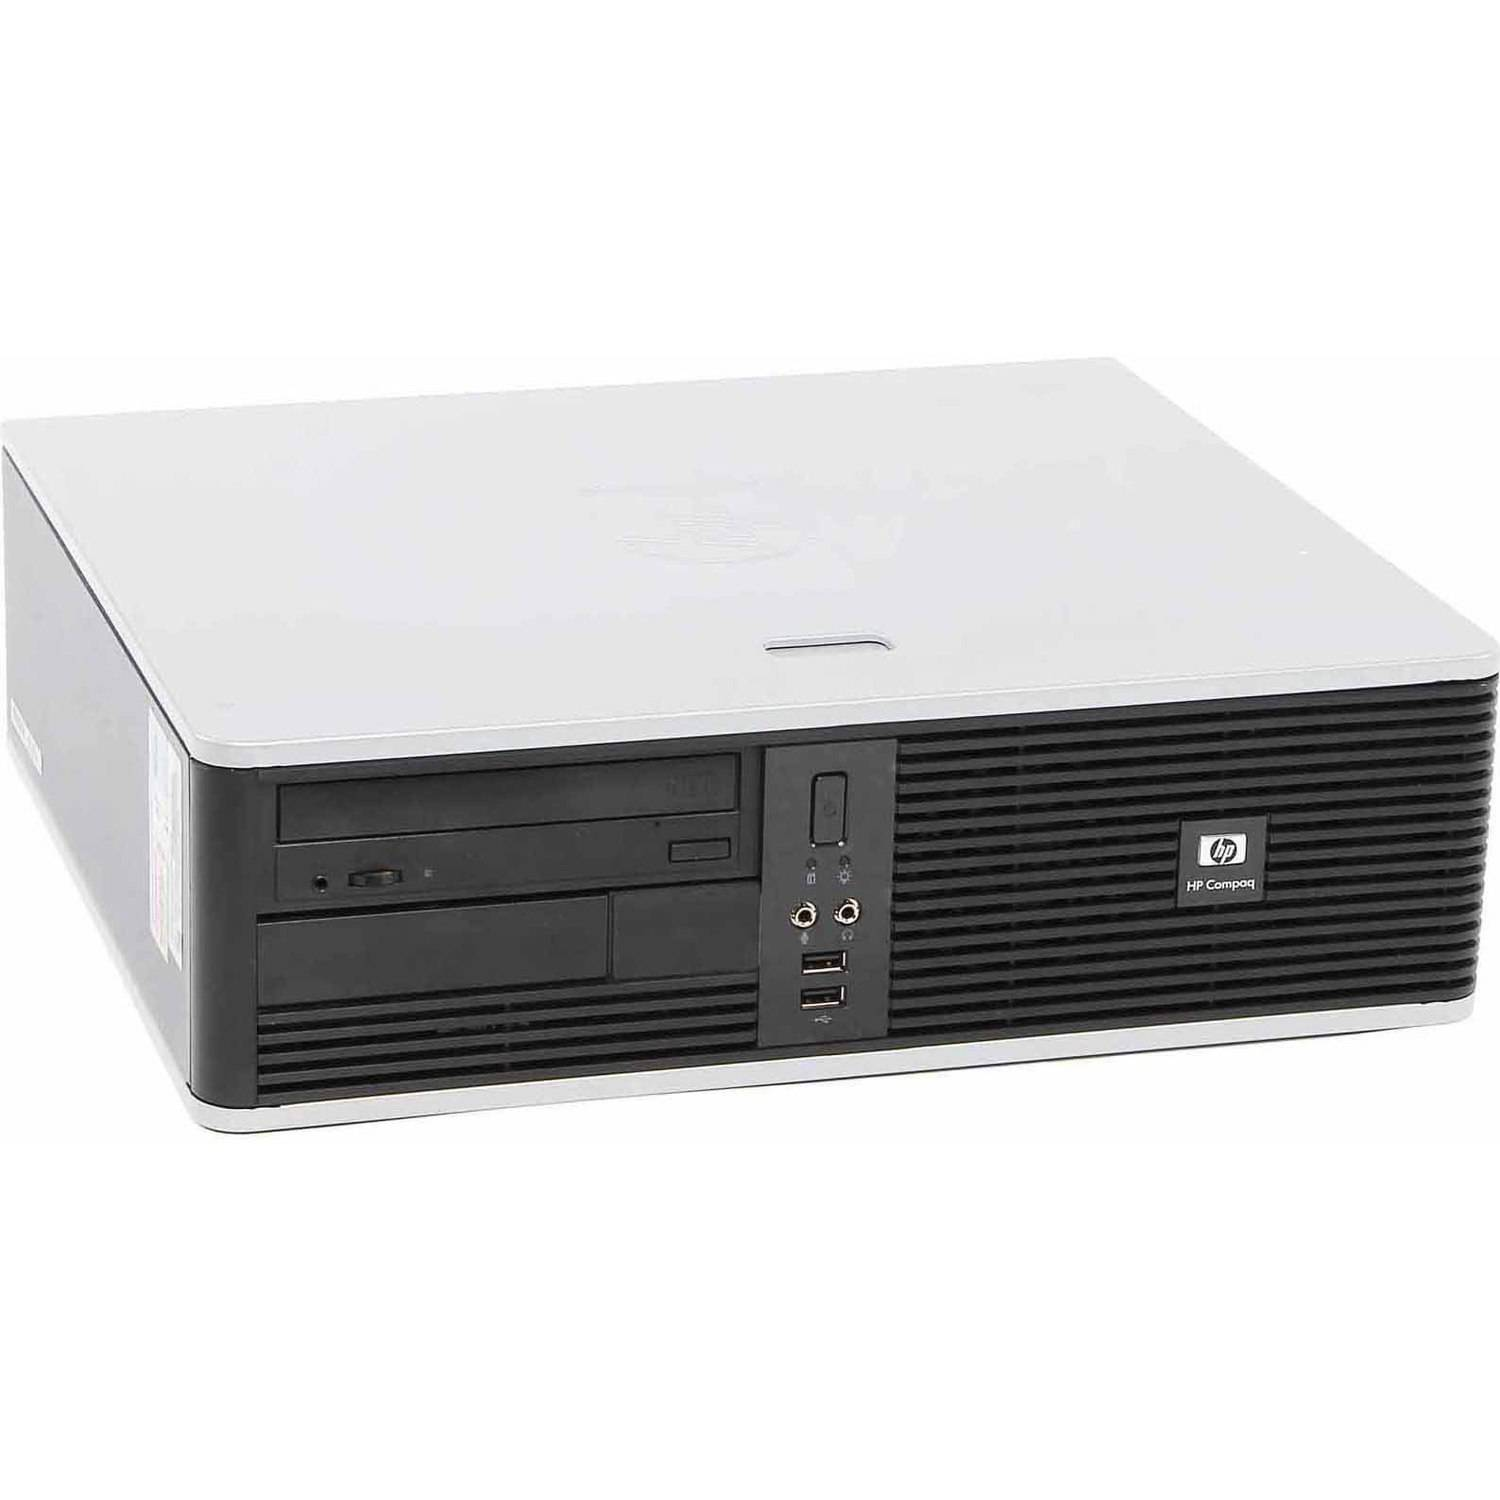 Refurbished HP DC5700 Desktop PC with Intel Core 2 Duo Processor, 4GB Memory, 750GB Hard Drive and Windows 7 Home Premium (Monitor Not Included)